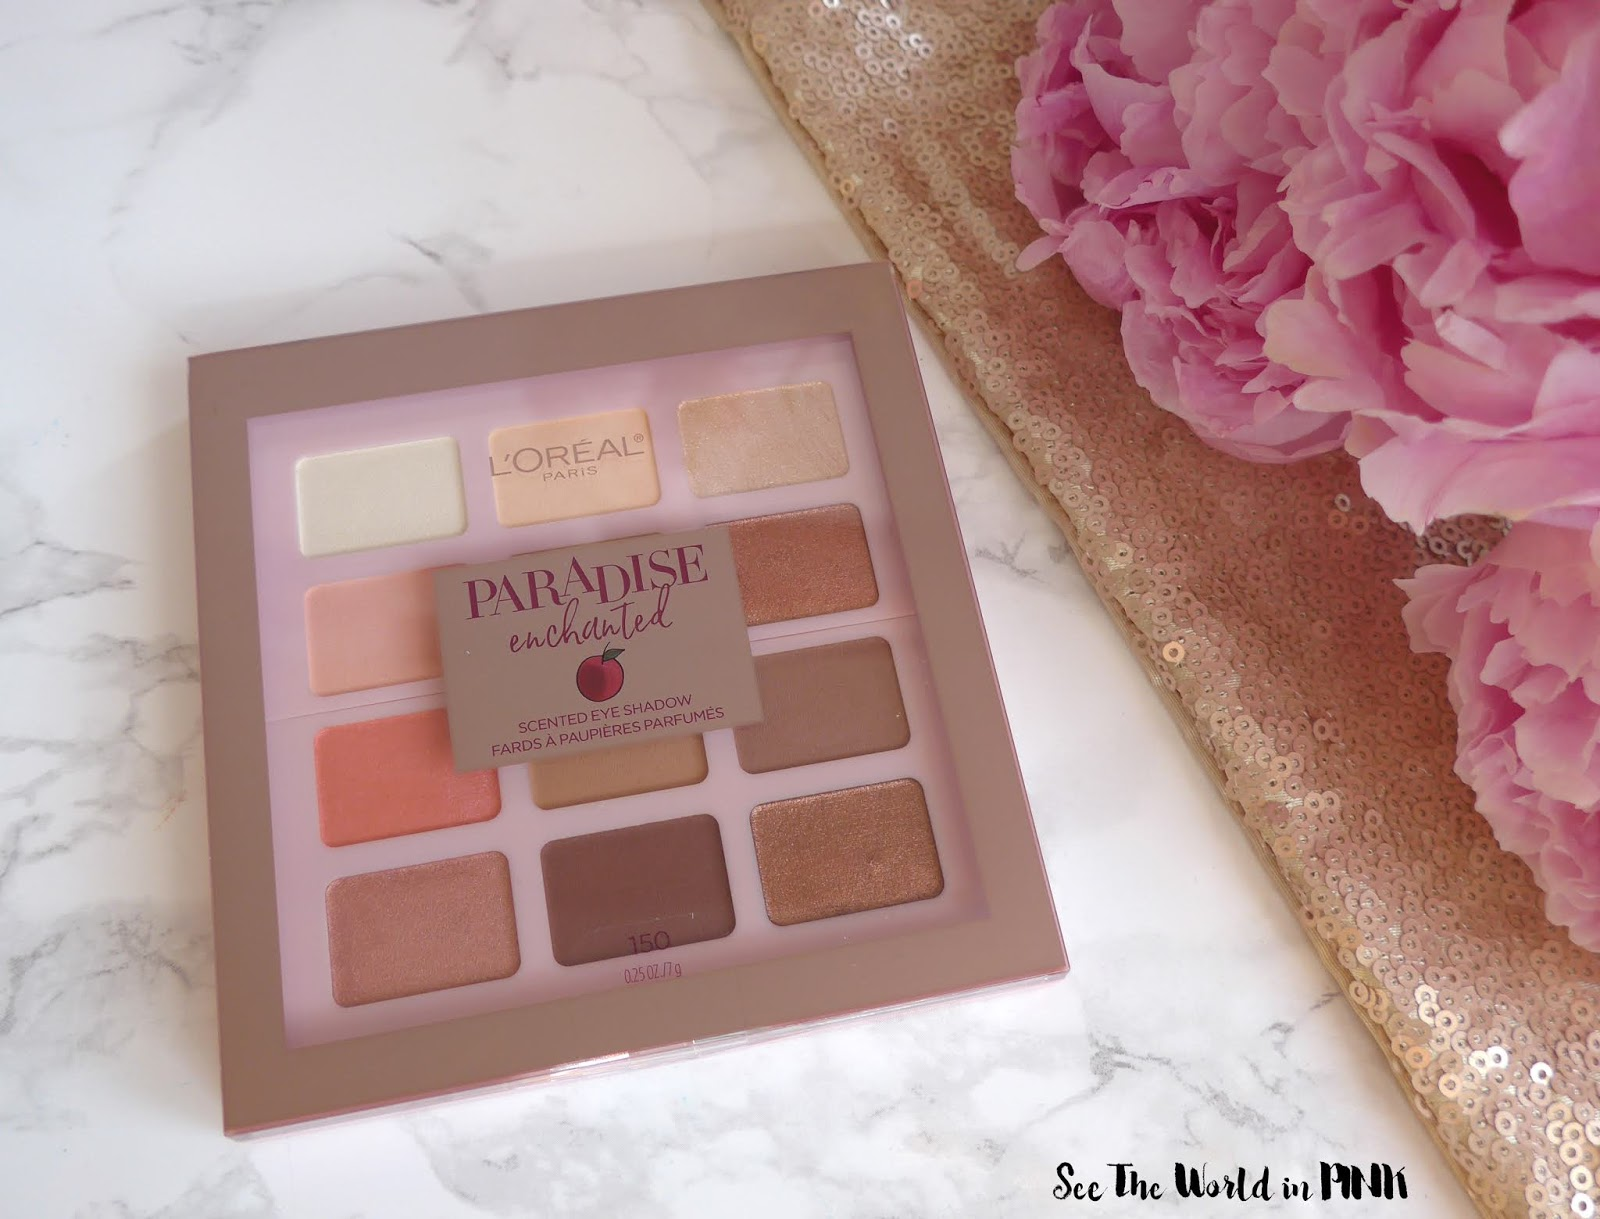 l'oreal paradise enchanted eyeshadow palette